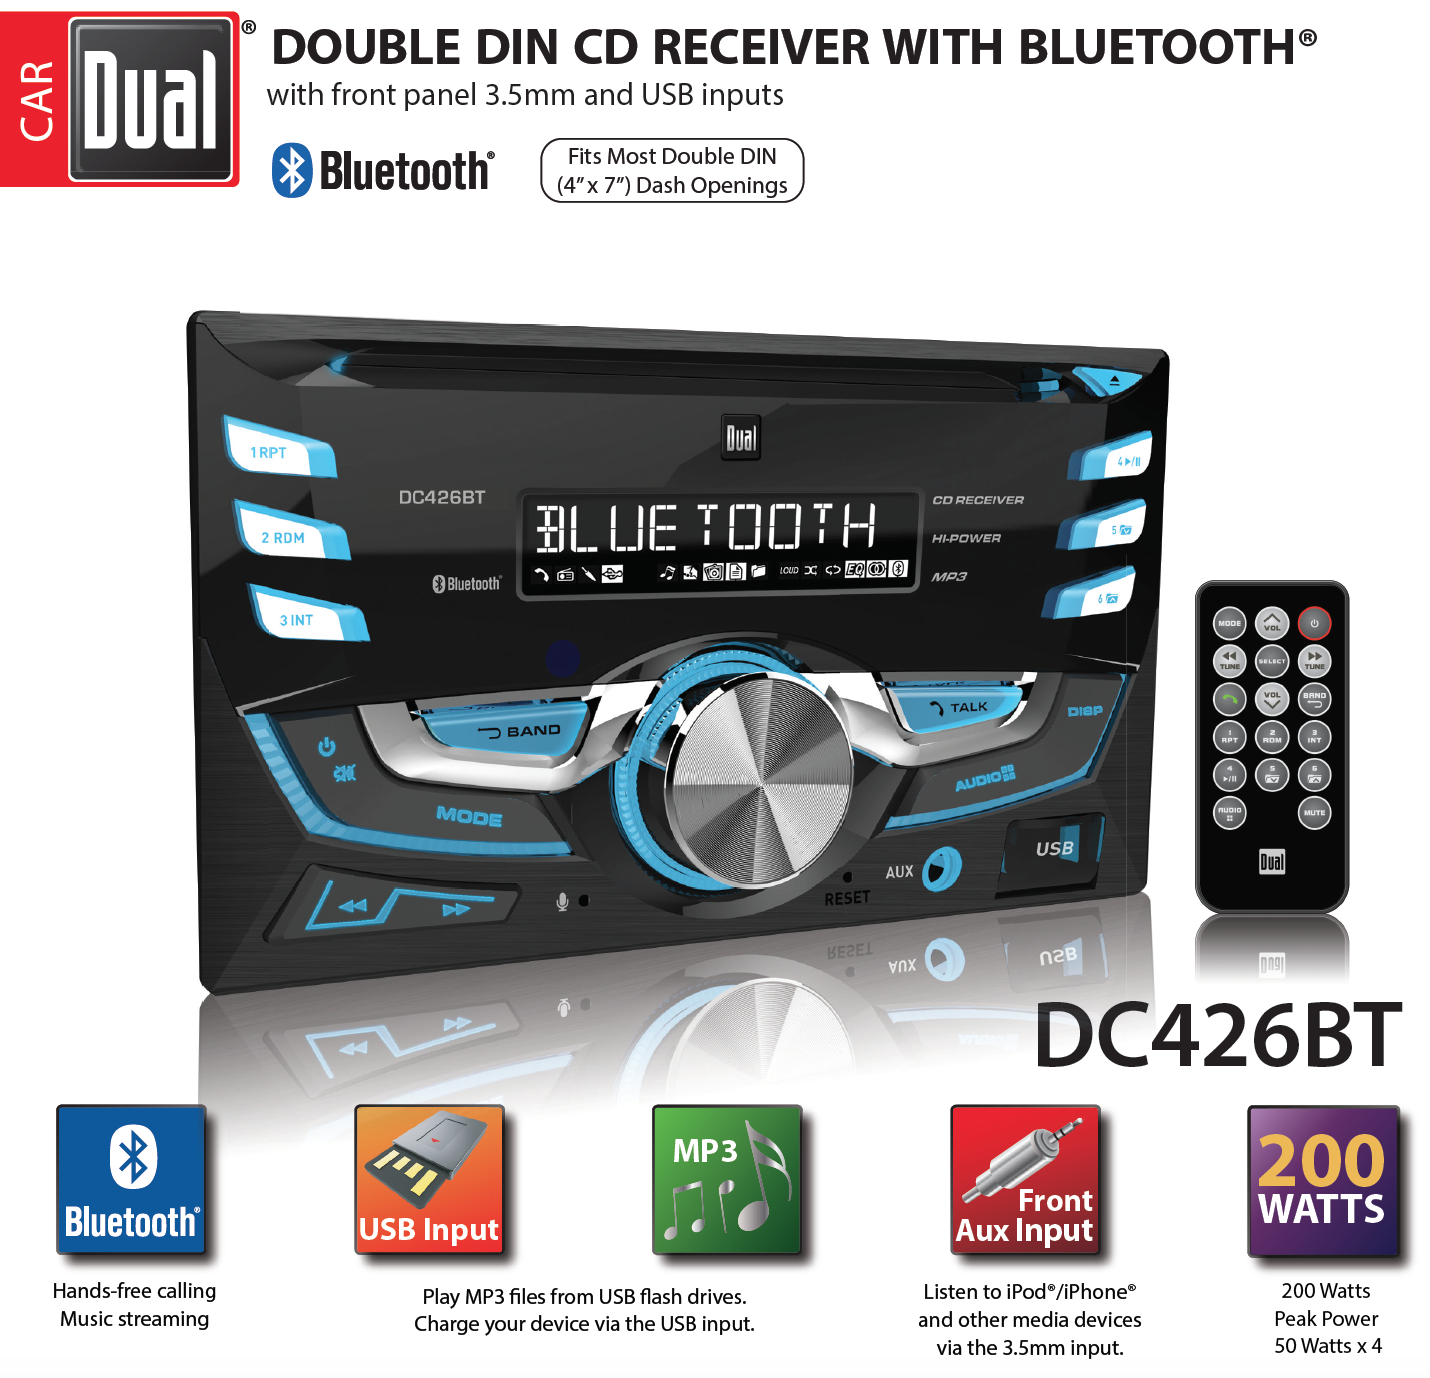 Dual electronics dc426bt multimedia 3 7 inch double din car stereo bluetooth